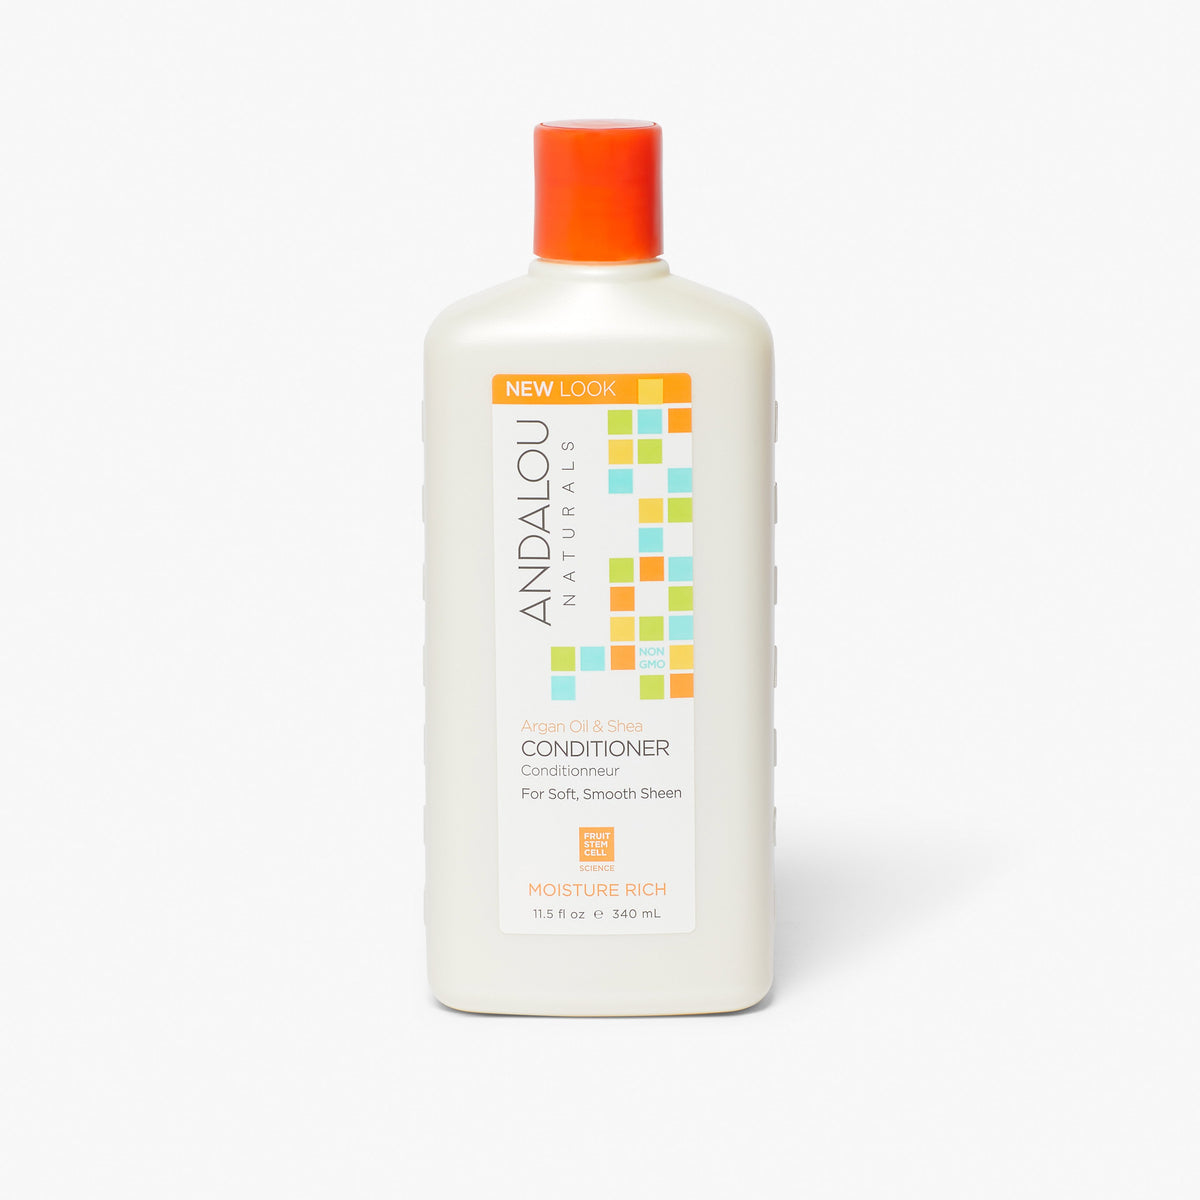 Argan Oil & Shea Moisture Rich Conditioner